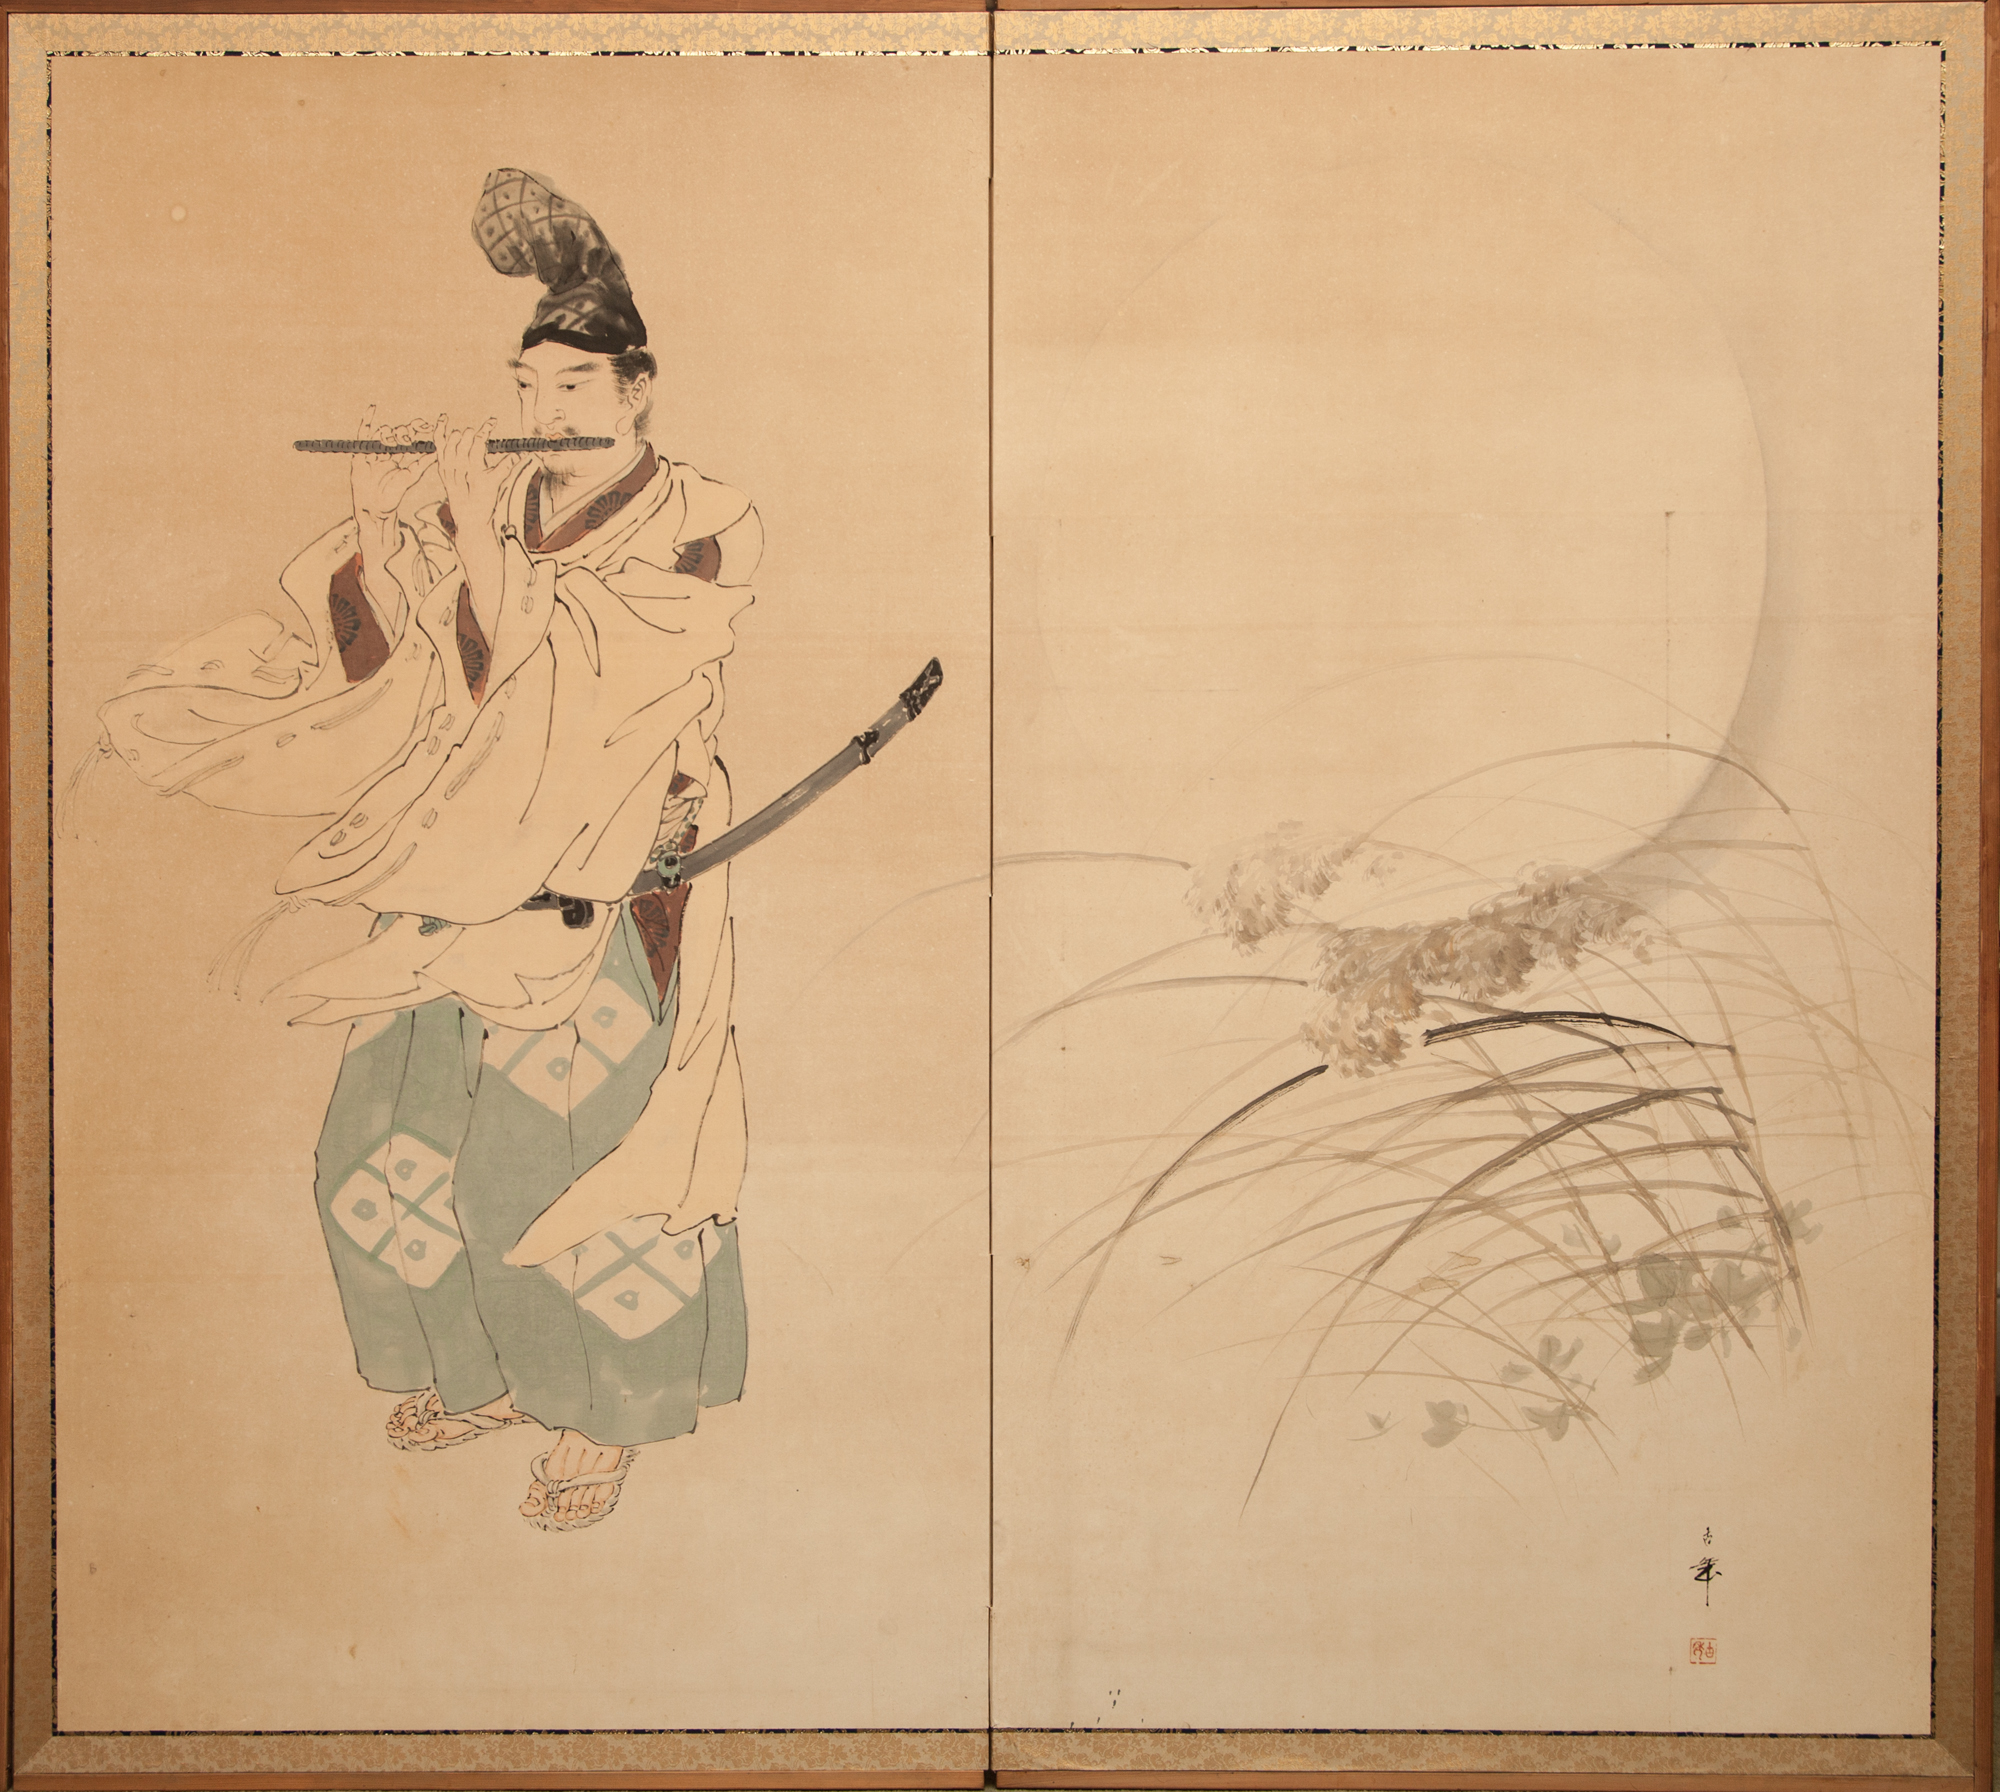 Japanese Two Panel Screen: Flute Player in Moonlit Pampas Grass